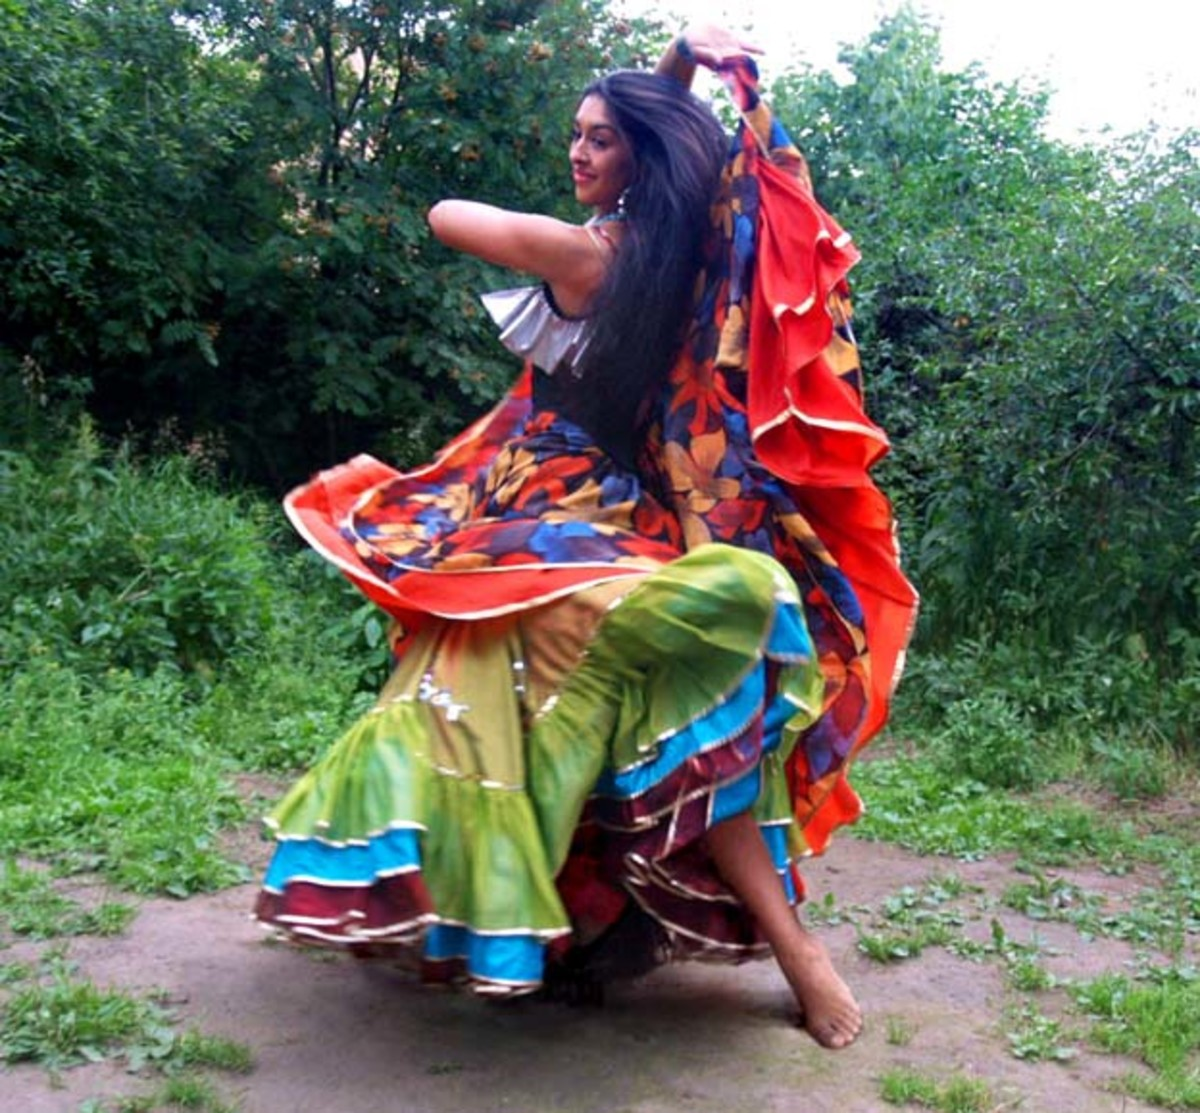 Queen of the Gypsies, Romany Persecution and Gypsies Today | HubPages